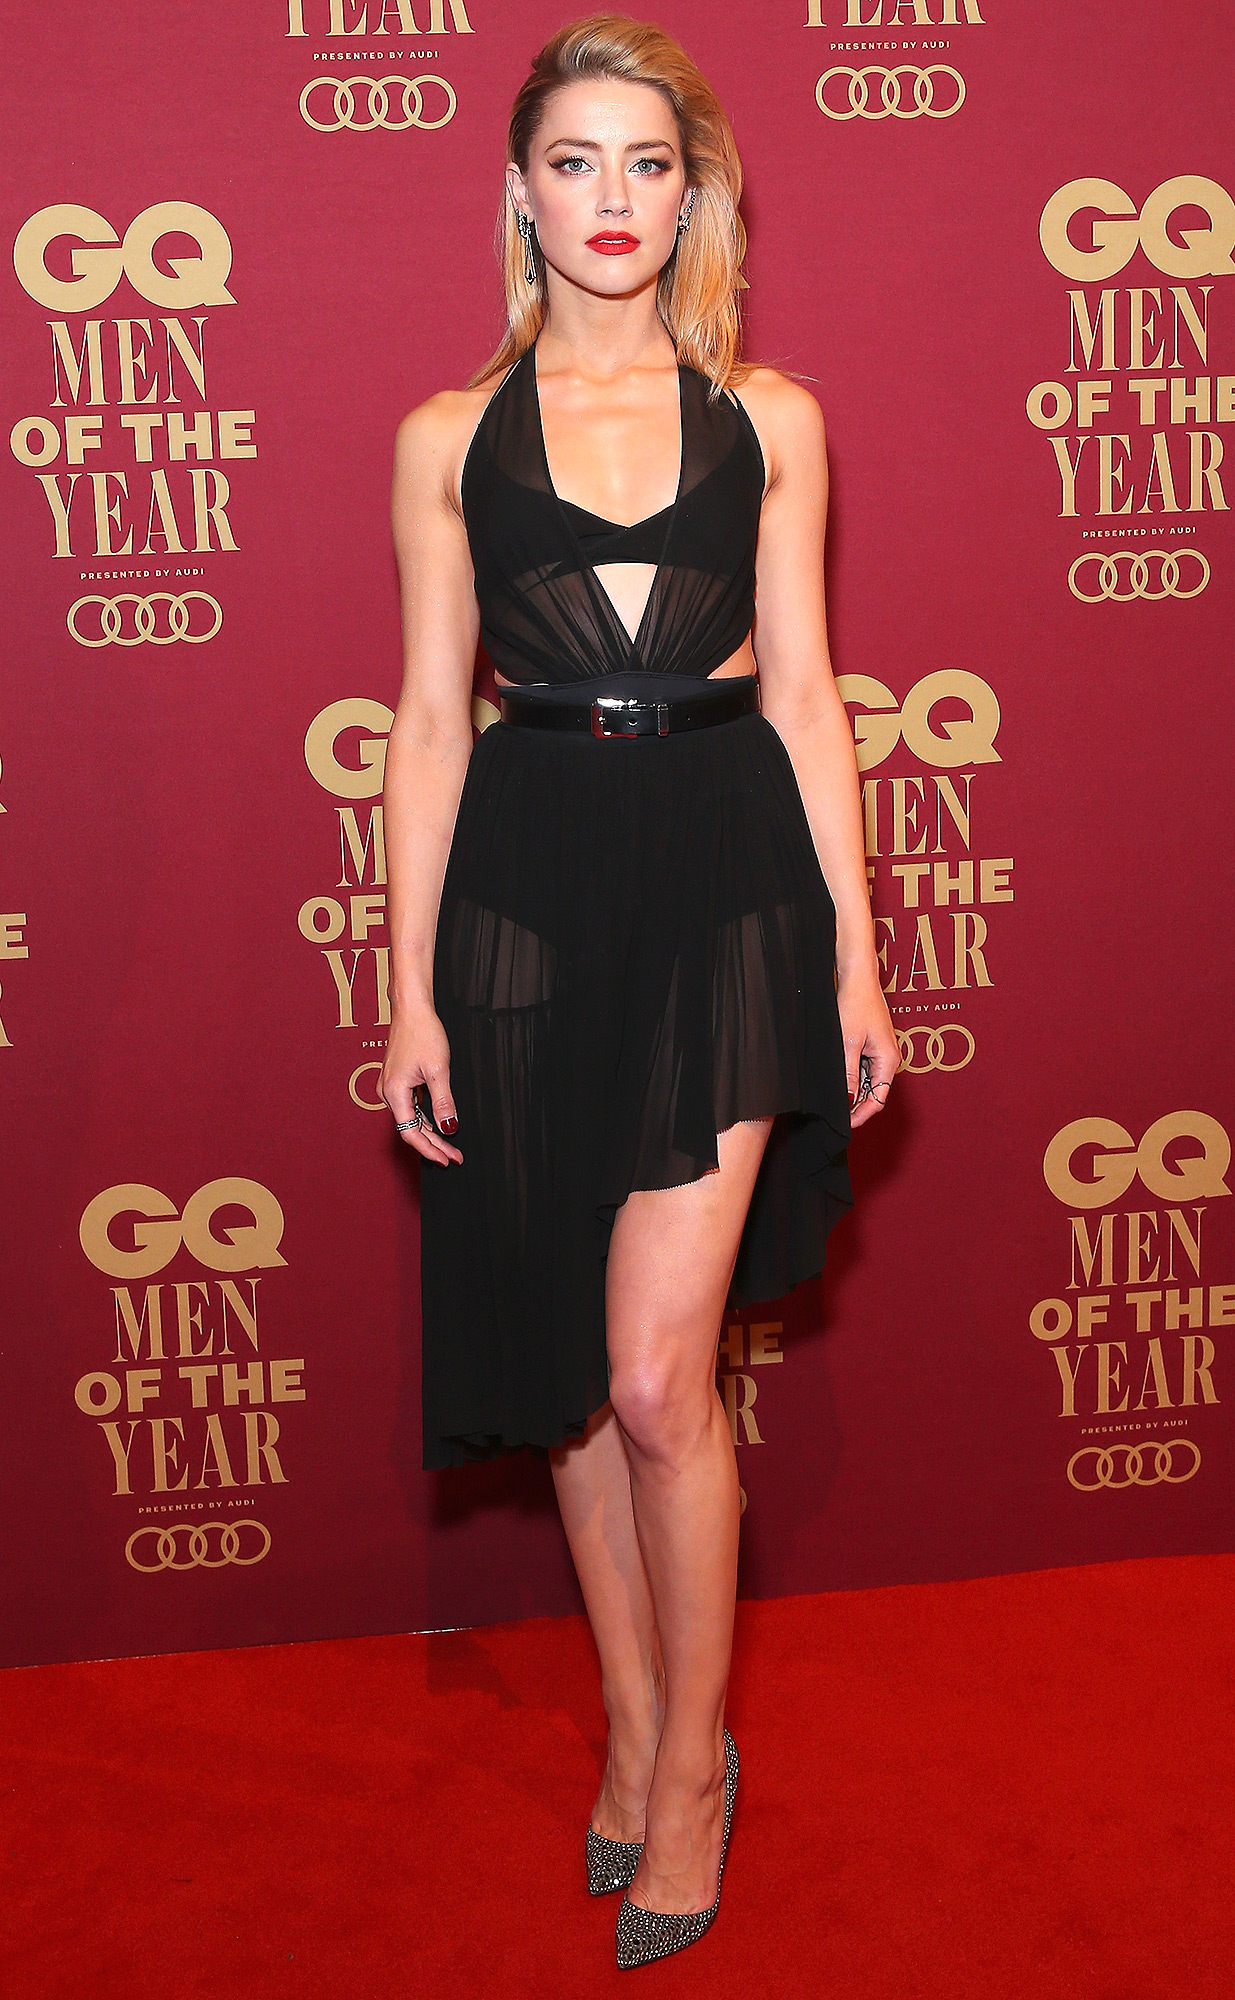 GQ Men Of The Year Awards - Red Carpet